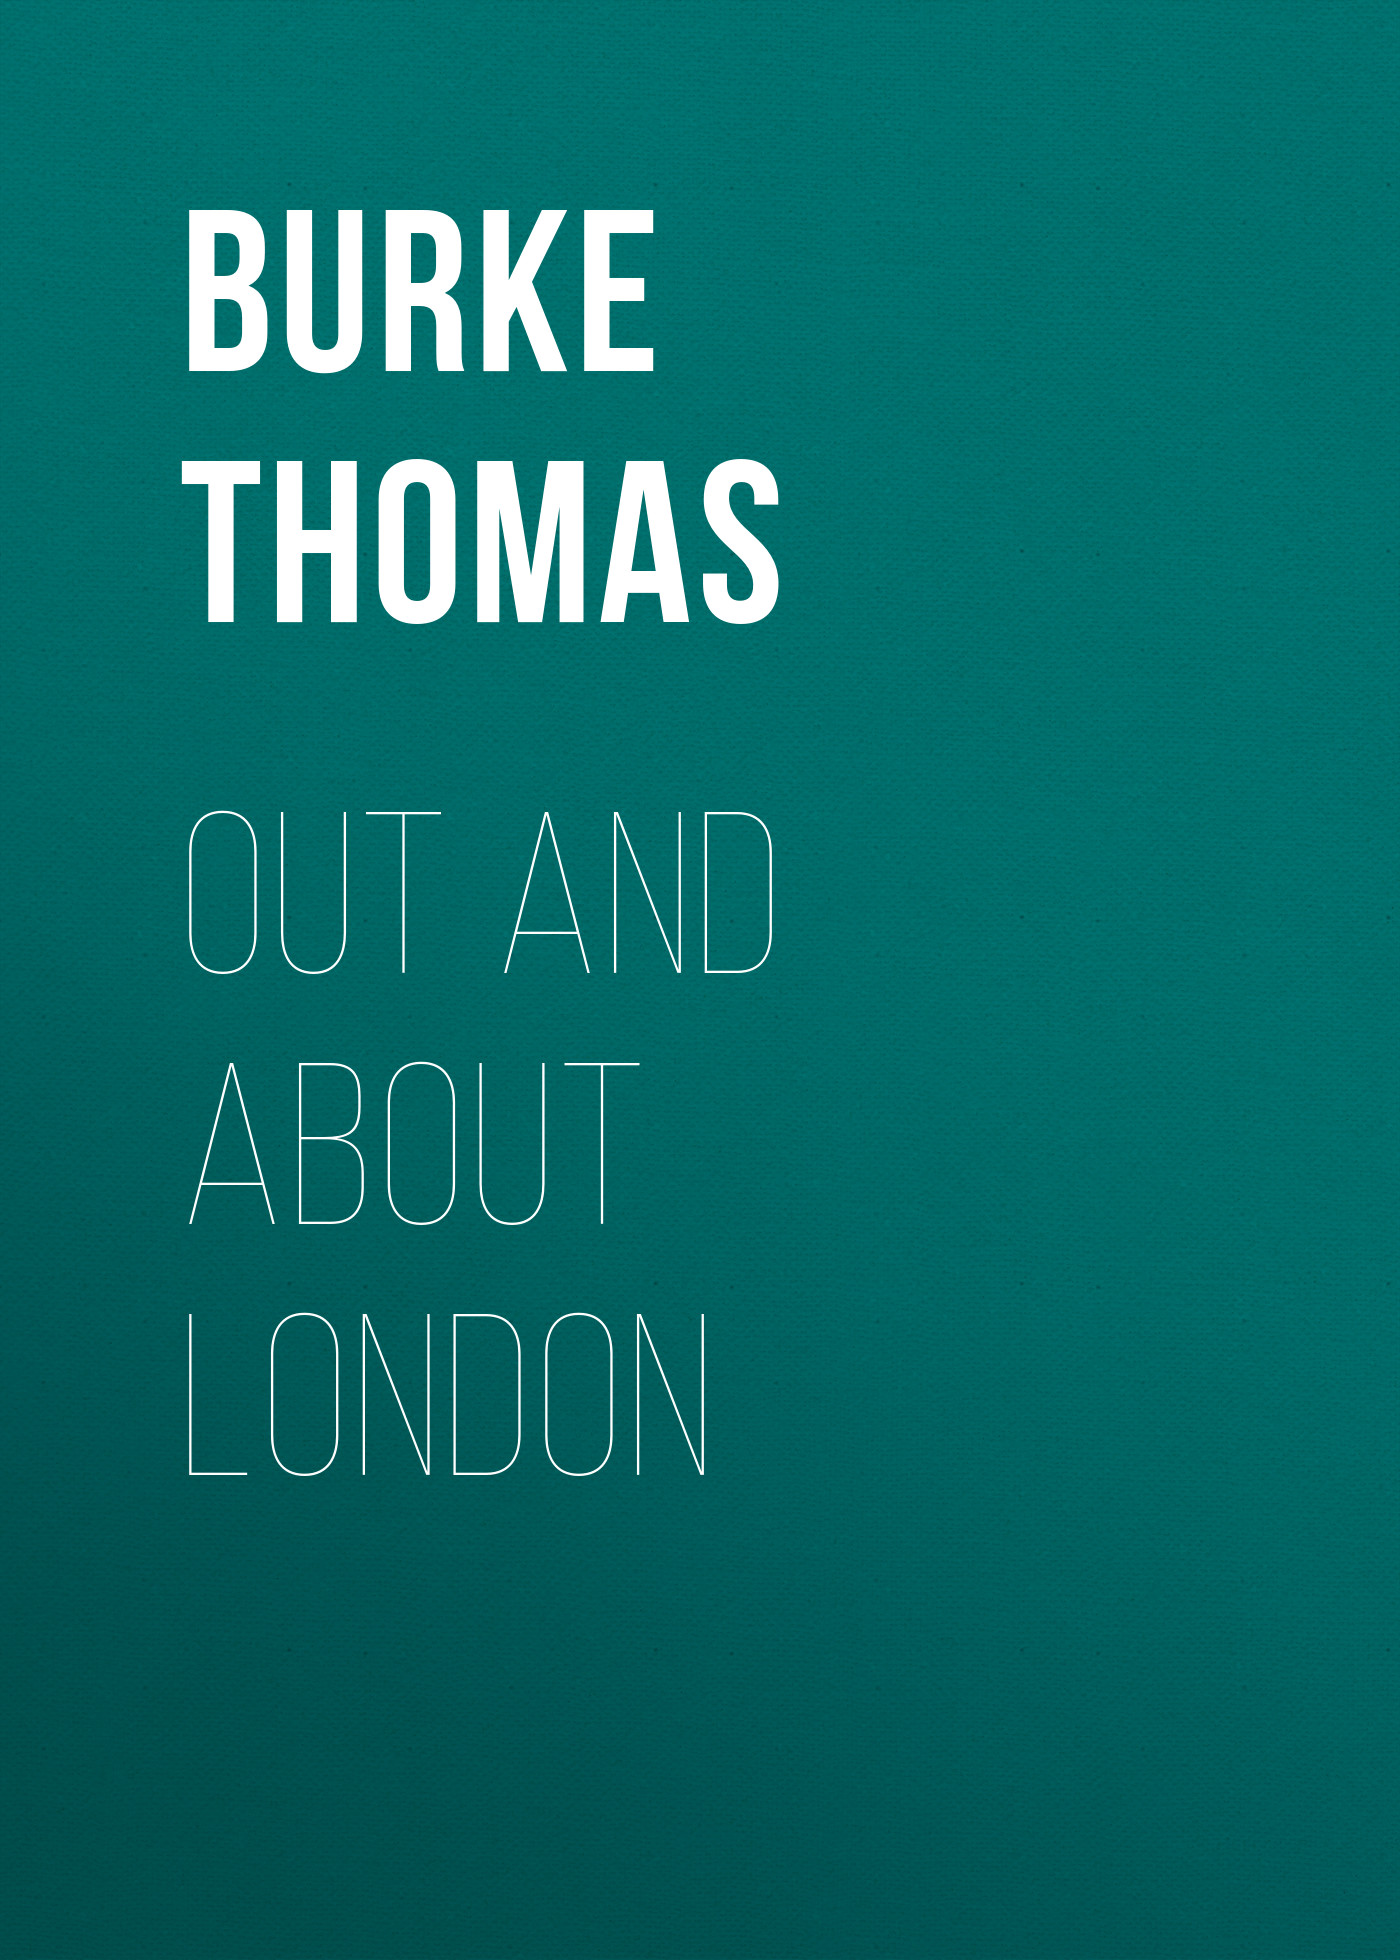 Burke Thomas Out and About London